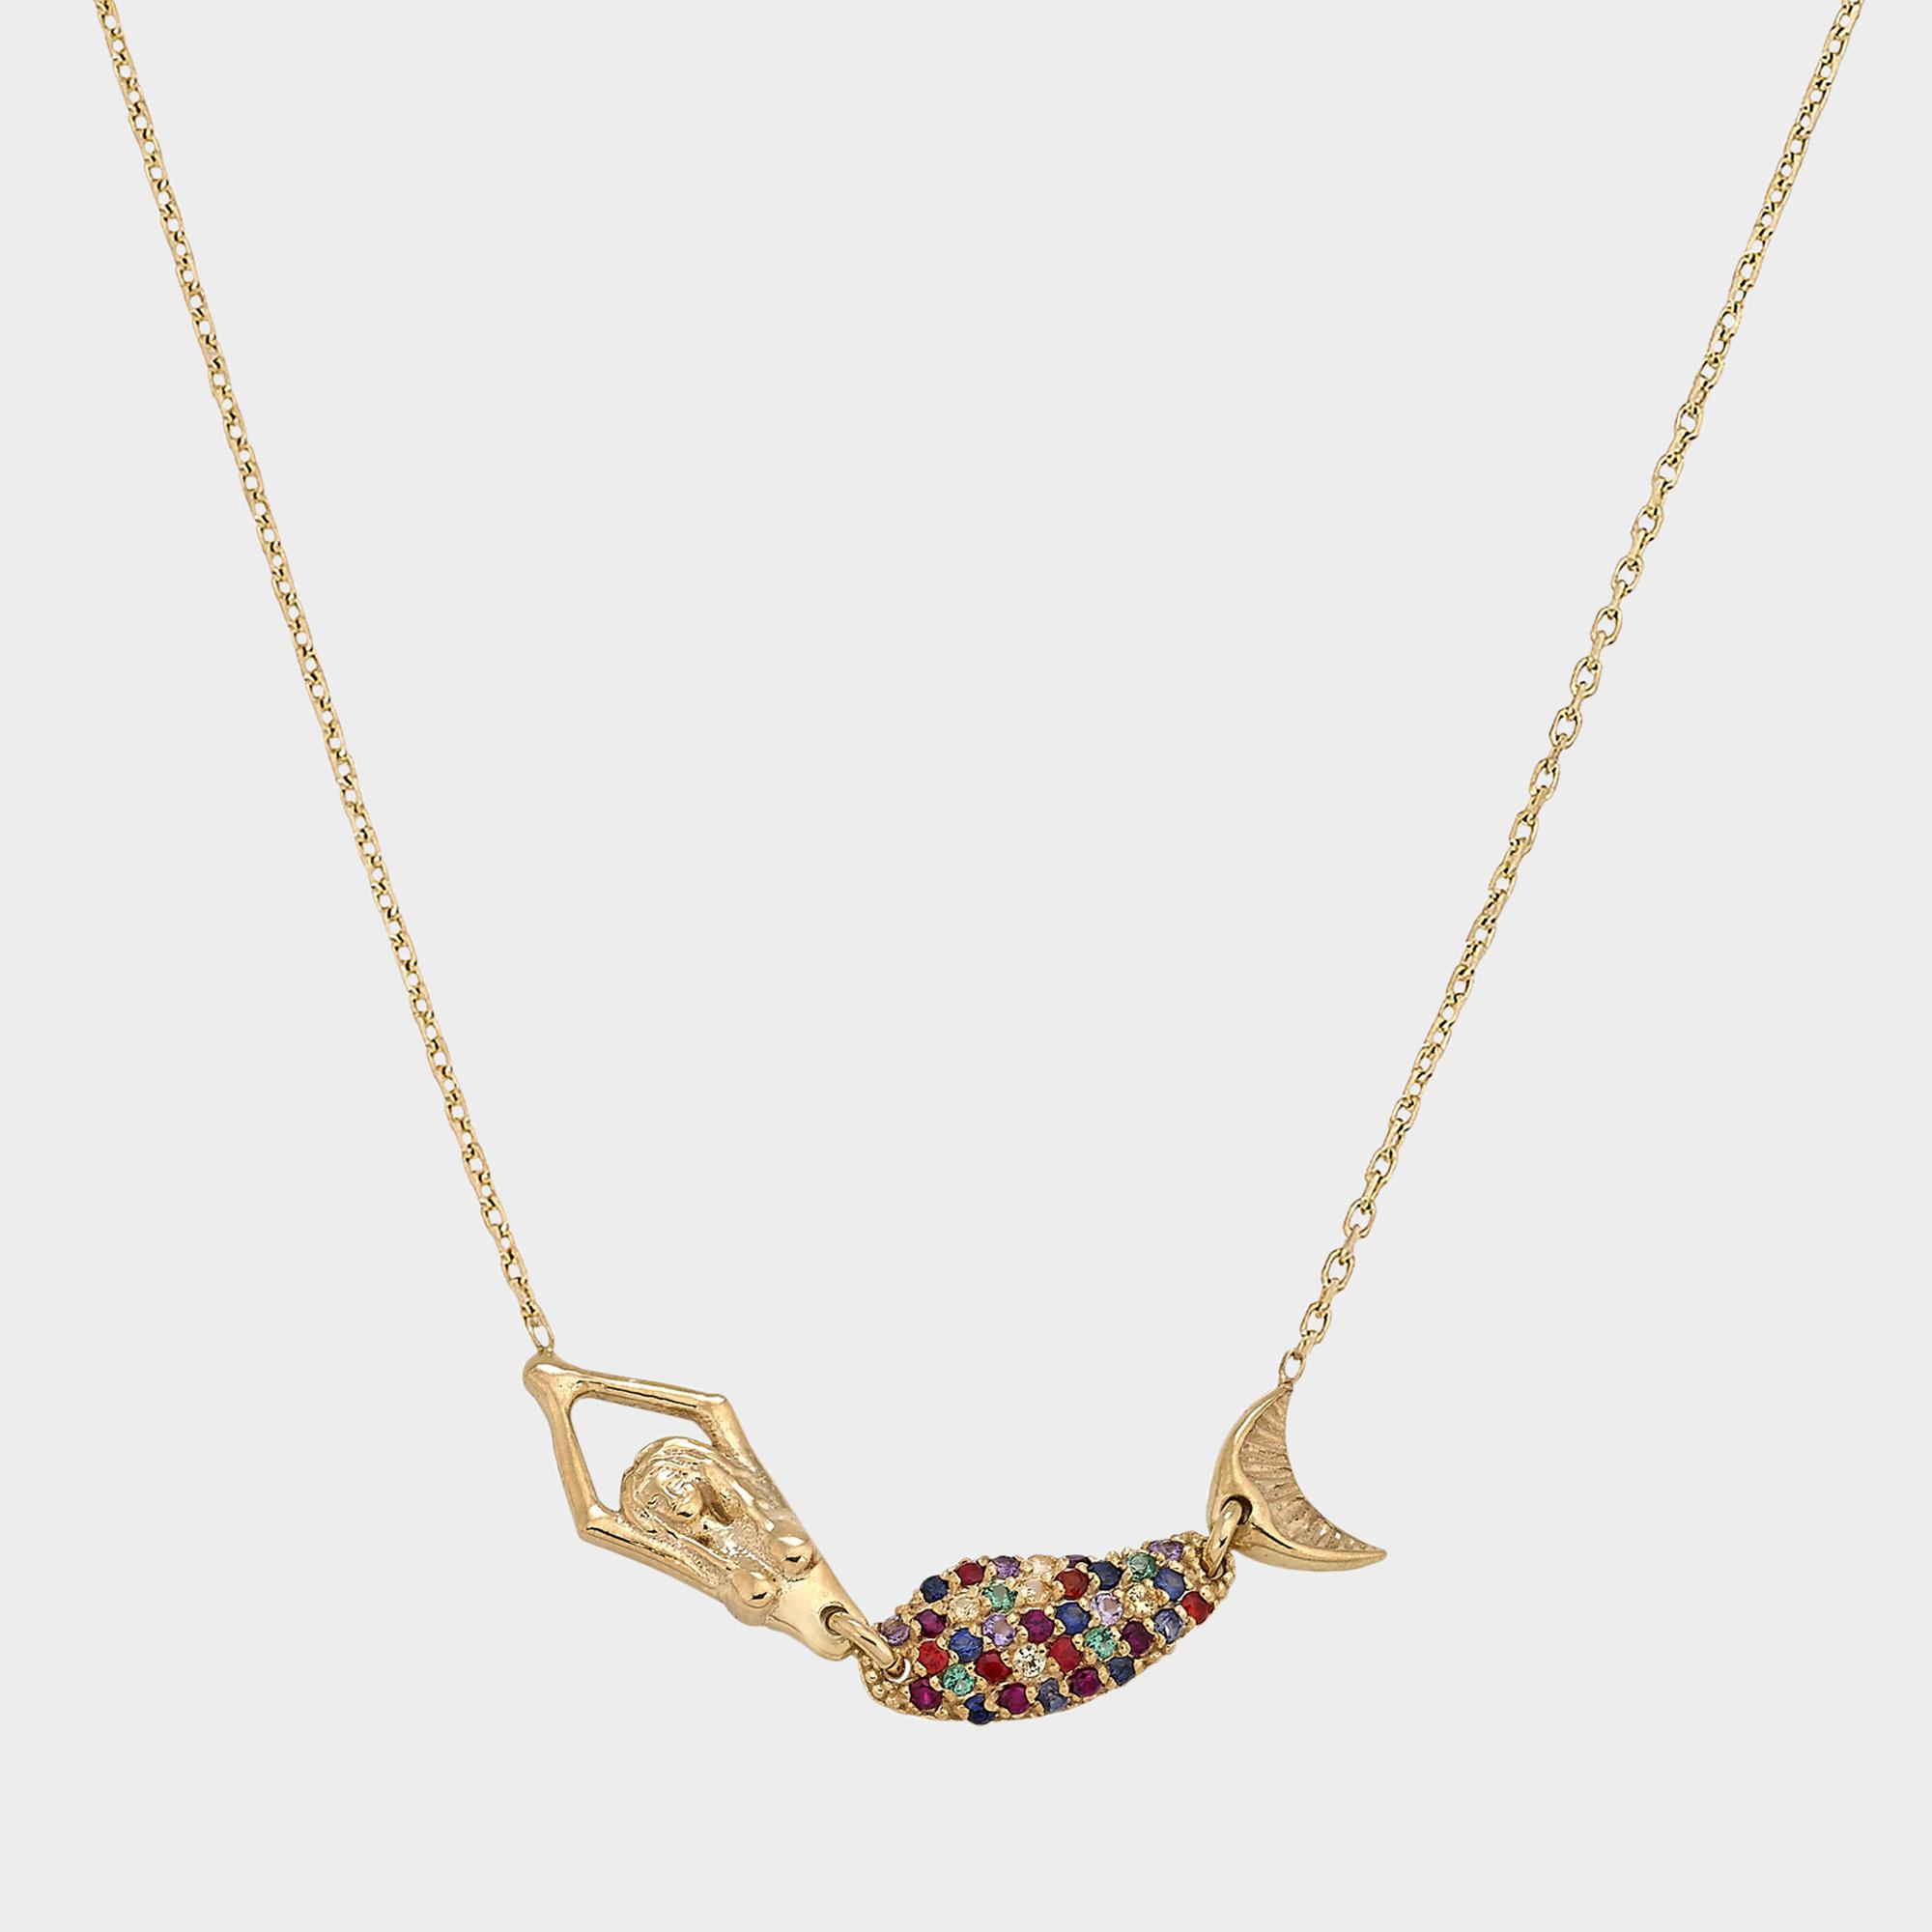 Anton Heunis Heart and Star Eternity Necklace in 14K Gold and Diamonds biQZchw